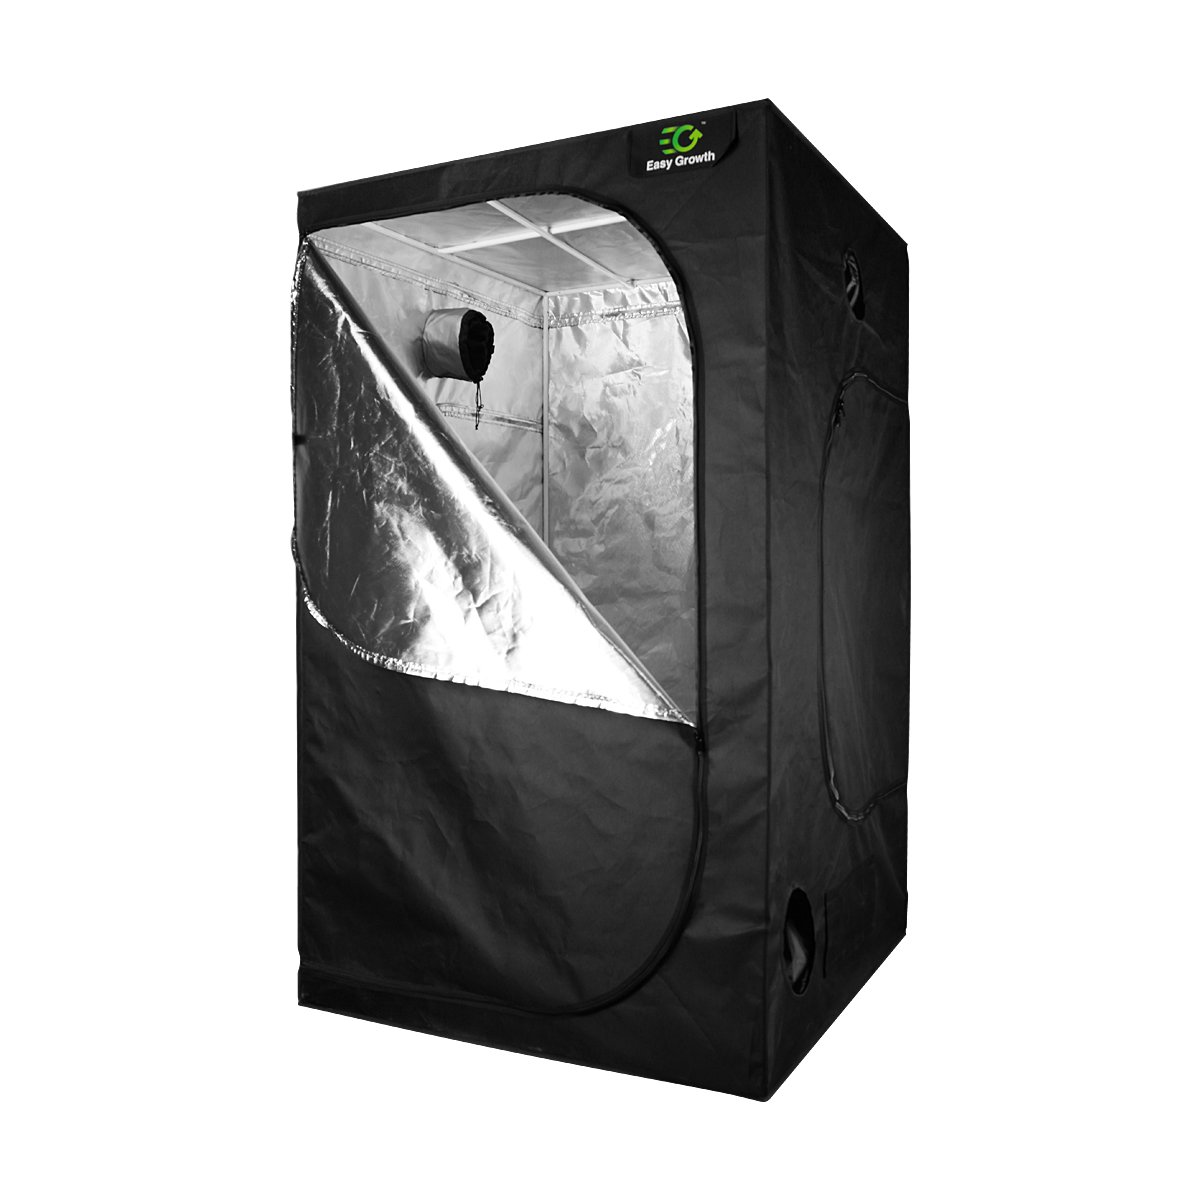 EasyGrowth 48''x48''x80'' Reflective Mylar Hydroponic Grow Tent with Waterproof Floor Tray for Indoor Plant Growing